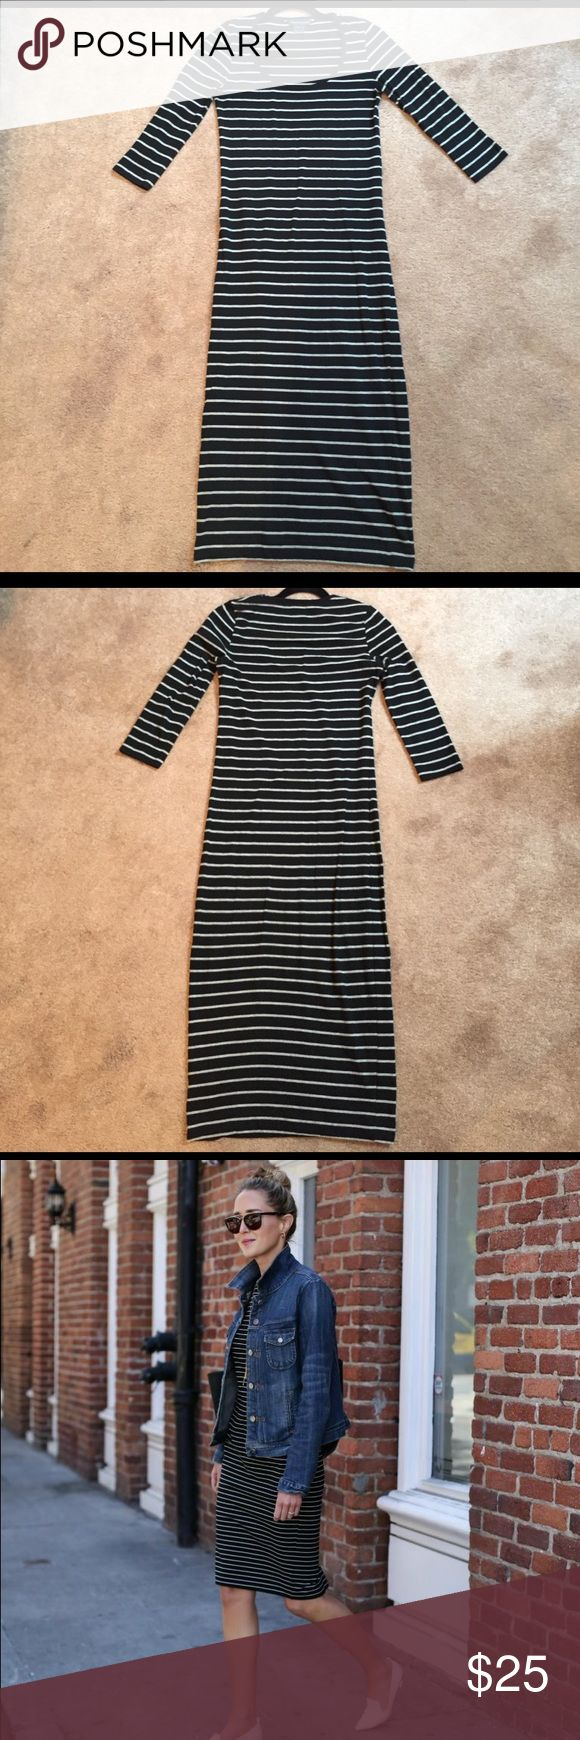 French connection jersey dress 👗 size 4 French connection jersey dress 👗 size 4. Worn gently maybe 3 times. Navy blue with grey stripes would look great worn with a denim jacket (3rd picture for inspiration, not actual dress but similar) French Connection Dresses Midi